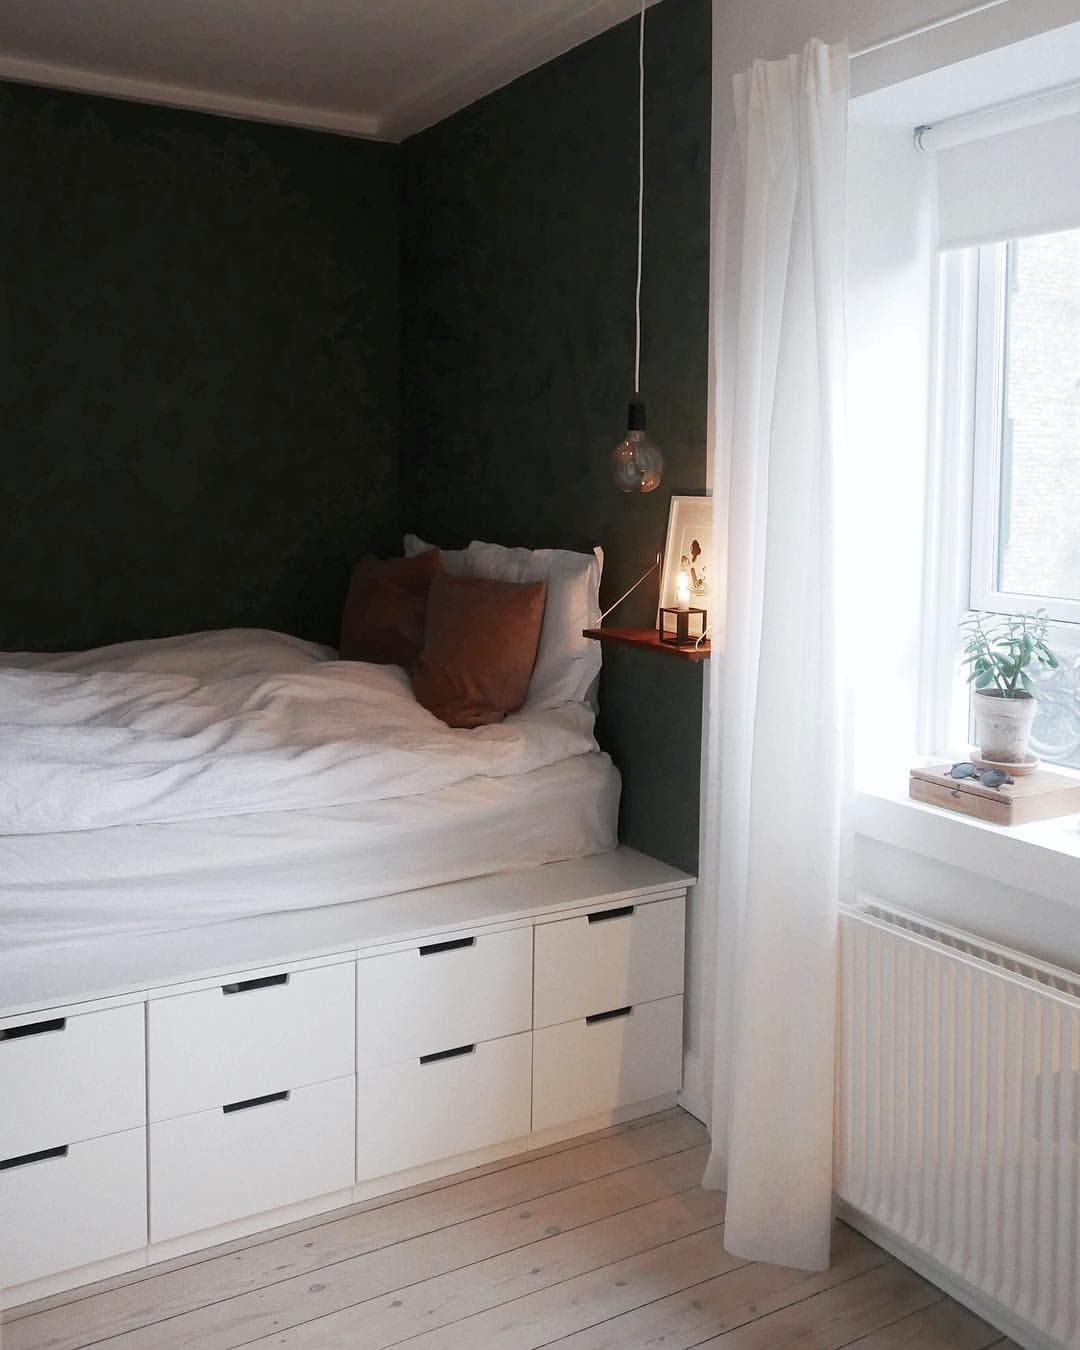 Ikea Nordli Hack Brubaker1 Storage Hacks Bedroom Bedroom Storage For Small Rooms Small Bedroom Storage